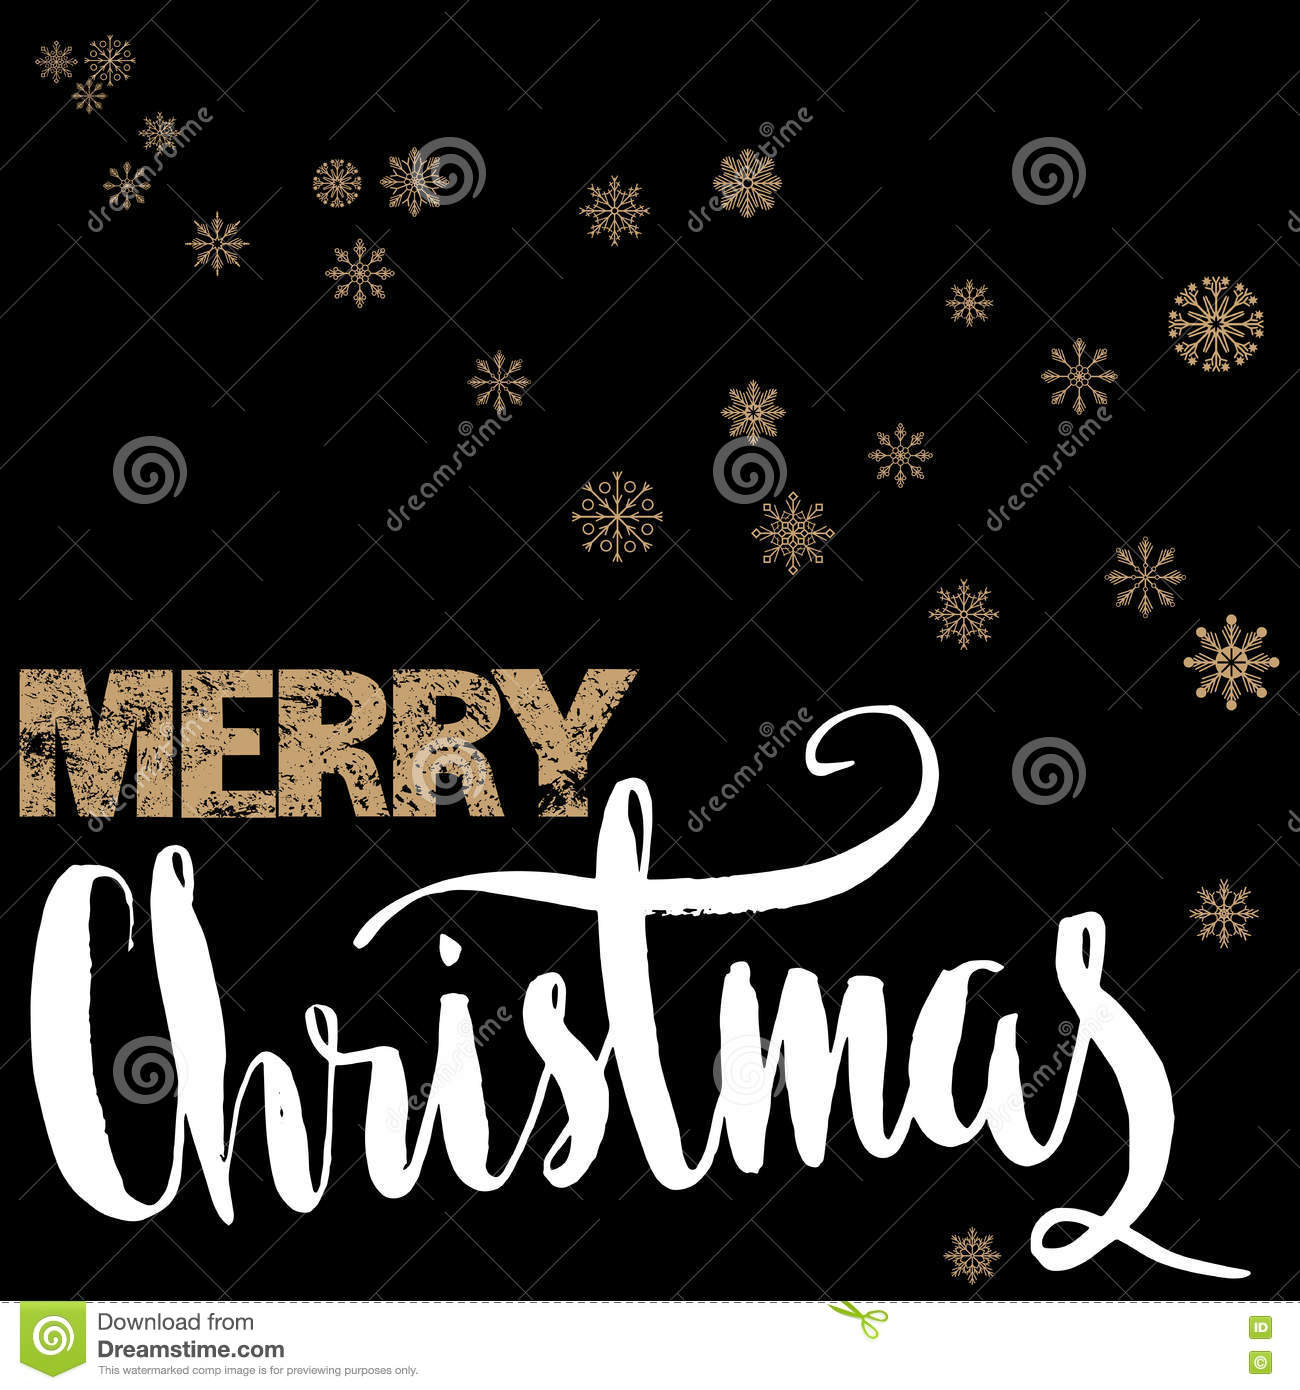 Merry Christmas Gold And White Lettering Design On Black Background With Golden Snowflakes